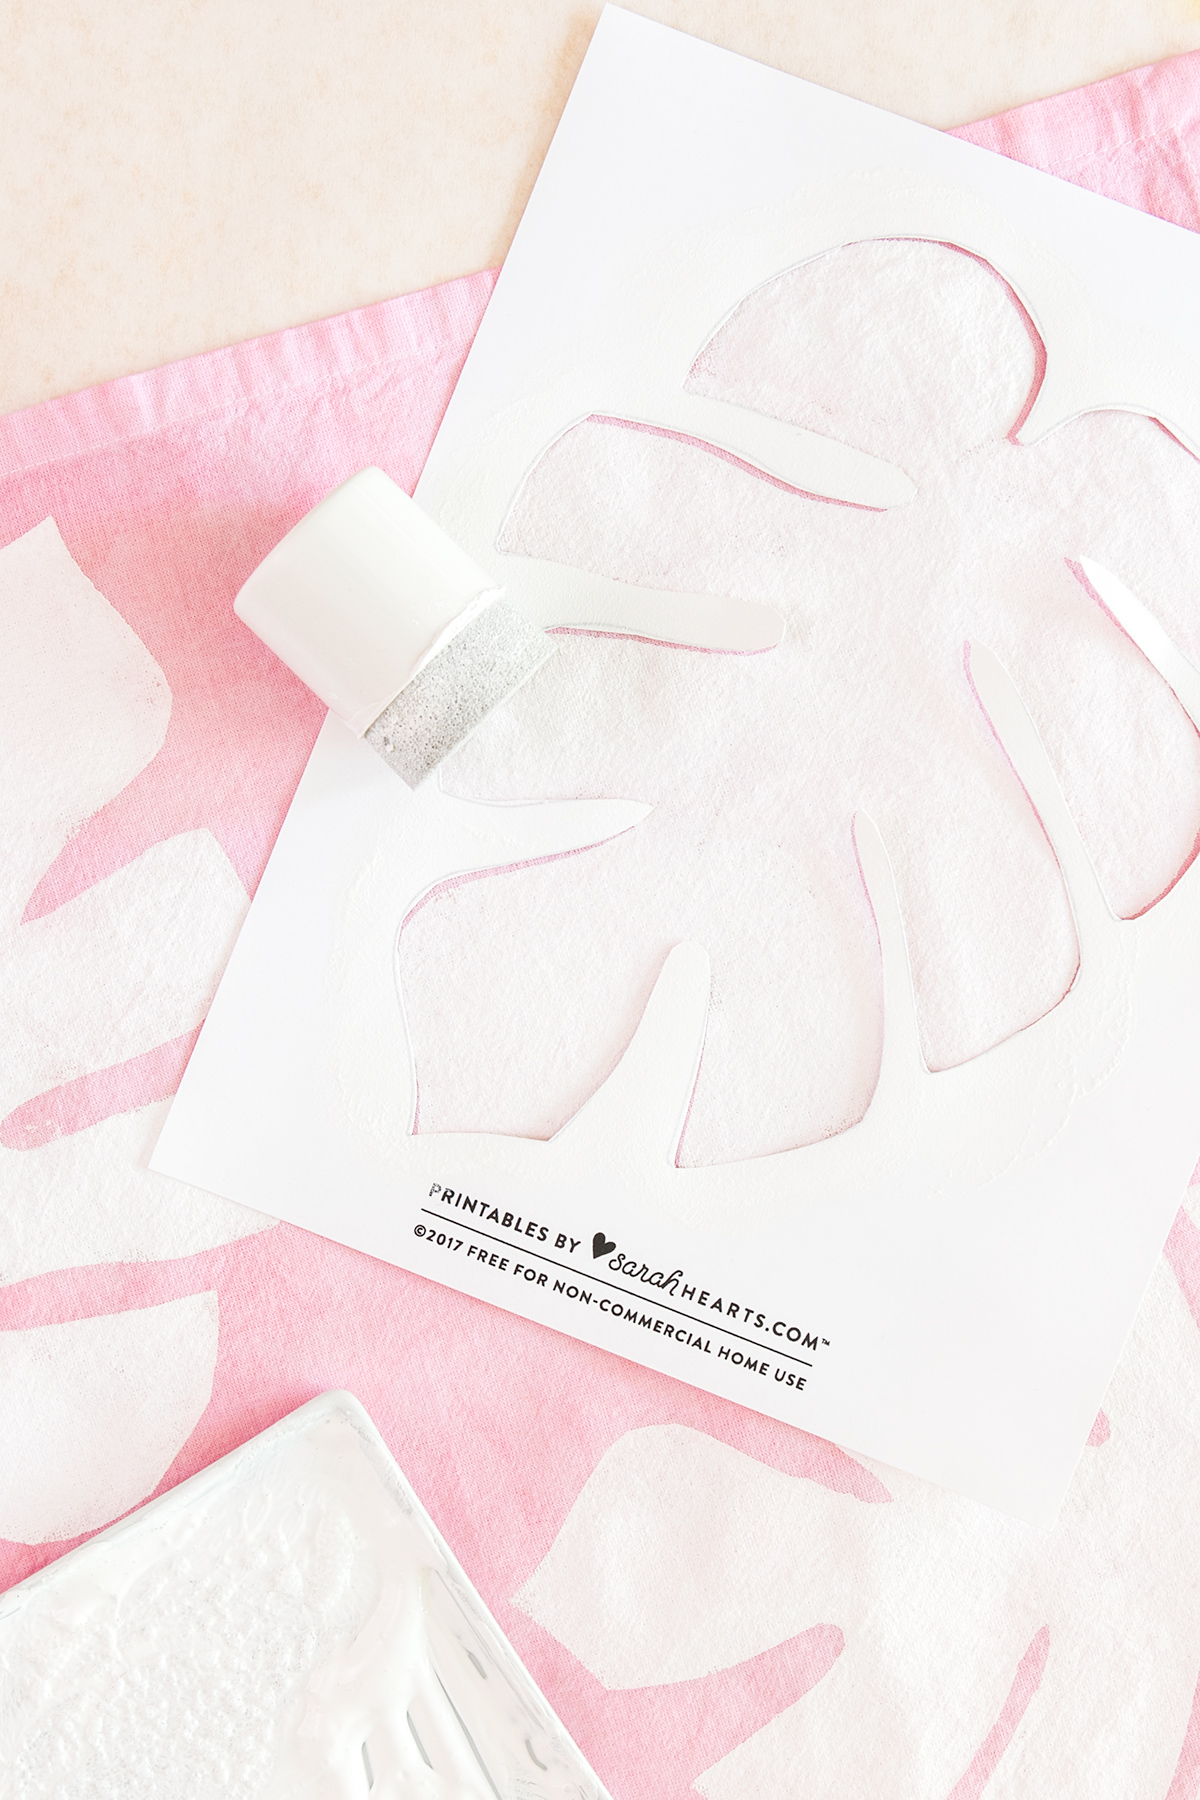 Create your own beautiful, stenciled monstera leaf cloth napkins!